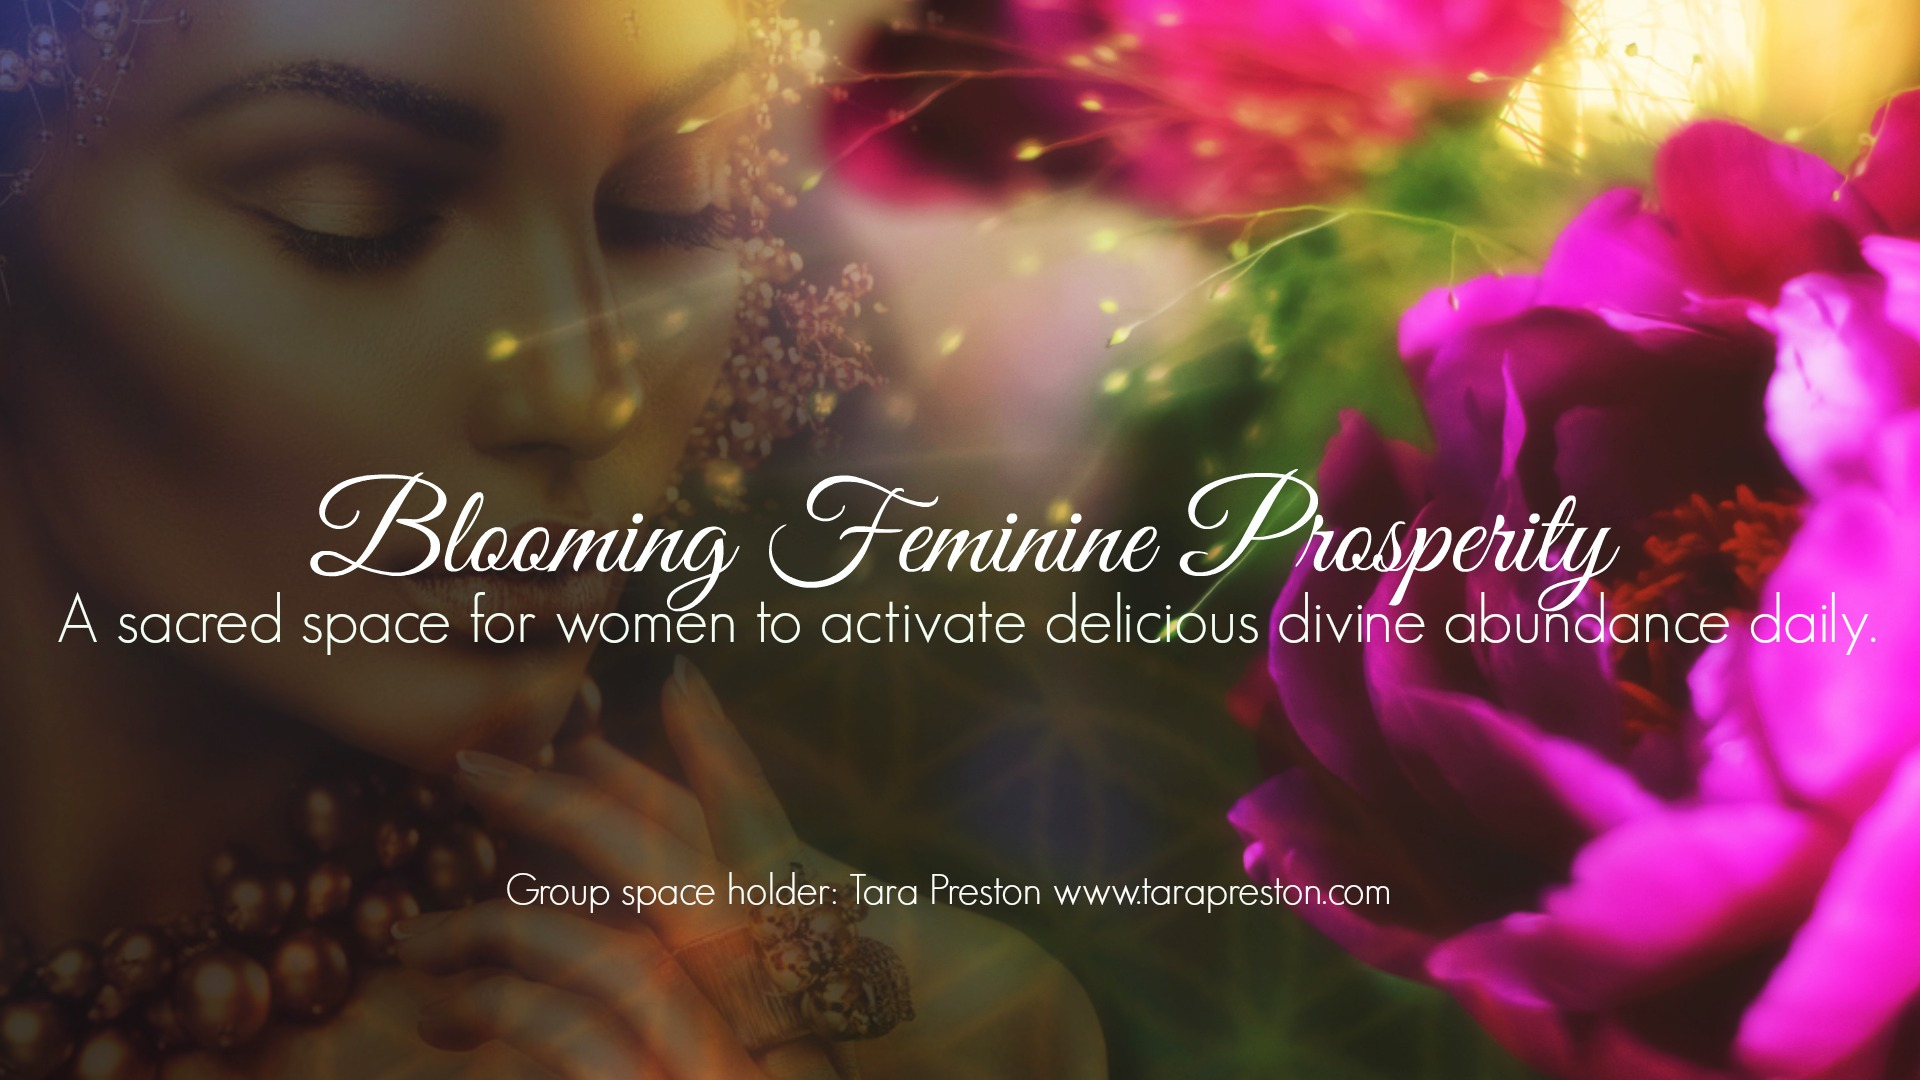 Join Tara's private Facebook group for delicious daily divine abundant activation's:  https://www.facebook.com/groups/bloomingfeminineprosperity/